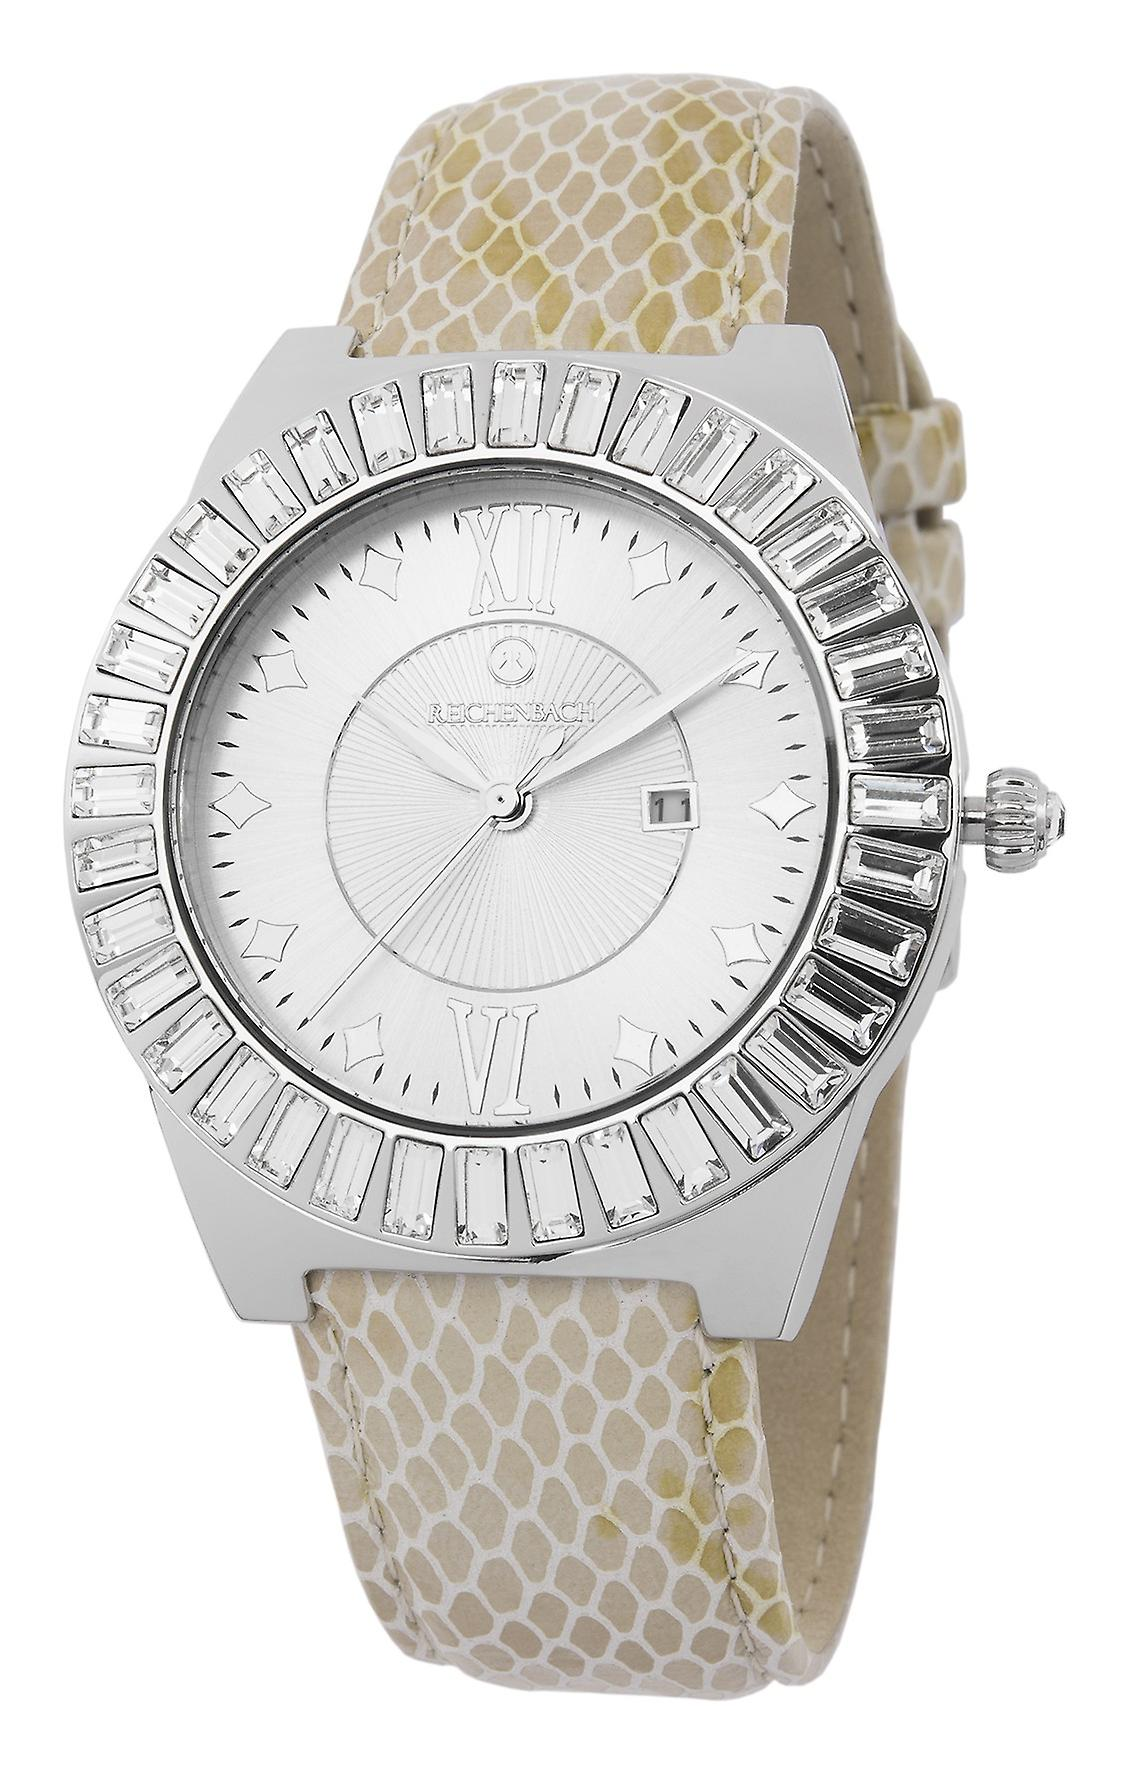 Reichenbach Ladies quarz watch Fedders, RB503-110C